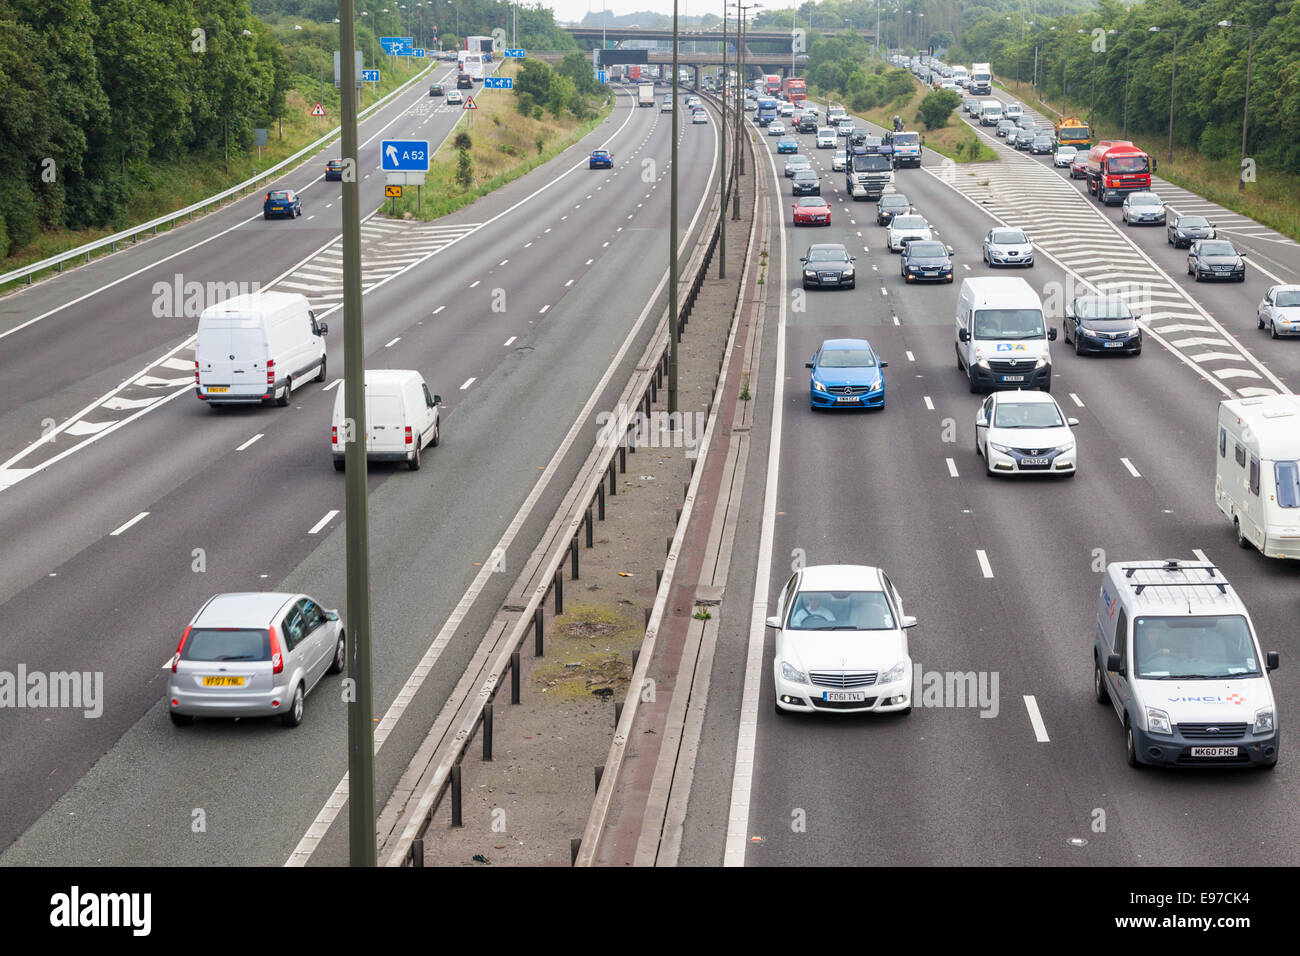 Traffic congestion with slow moving traffic and a long tailback of vehicles, Junction 25 M1 motorway, Nottinghamshire - Stock Image